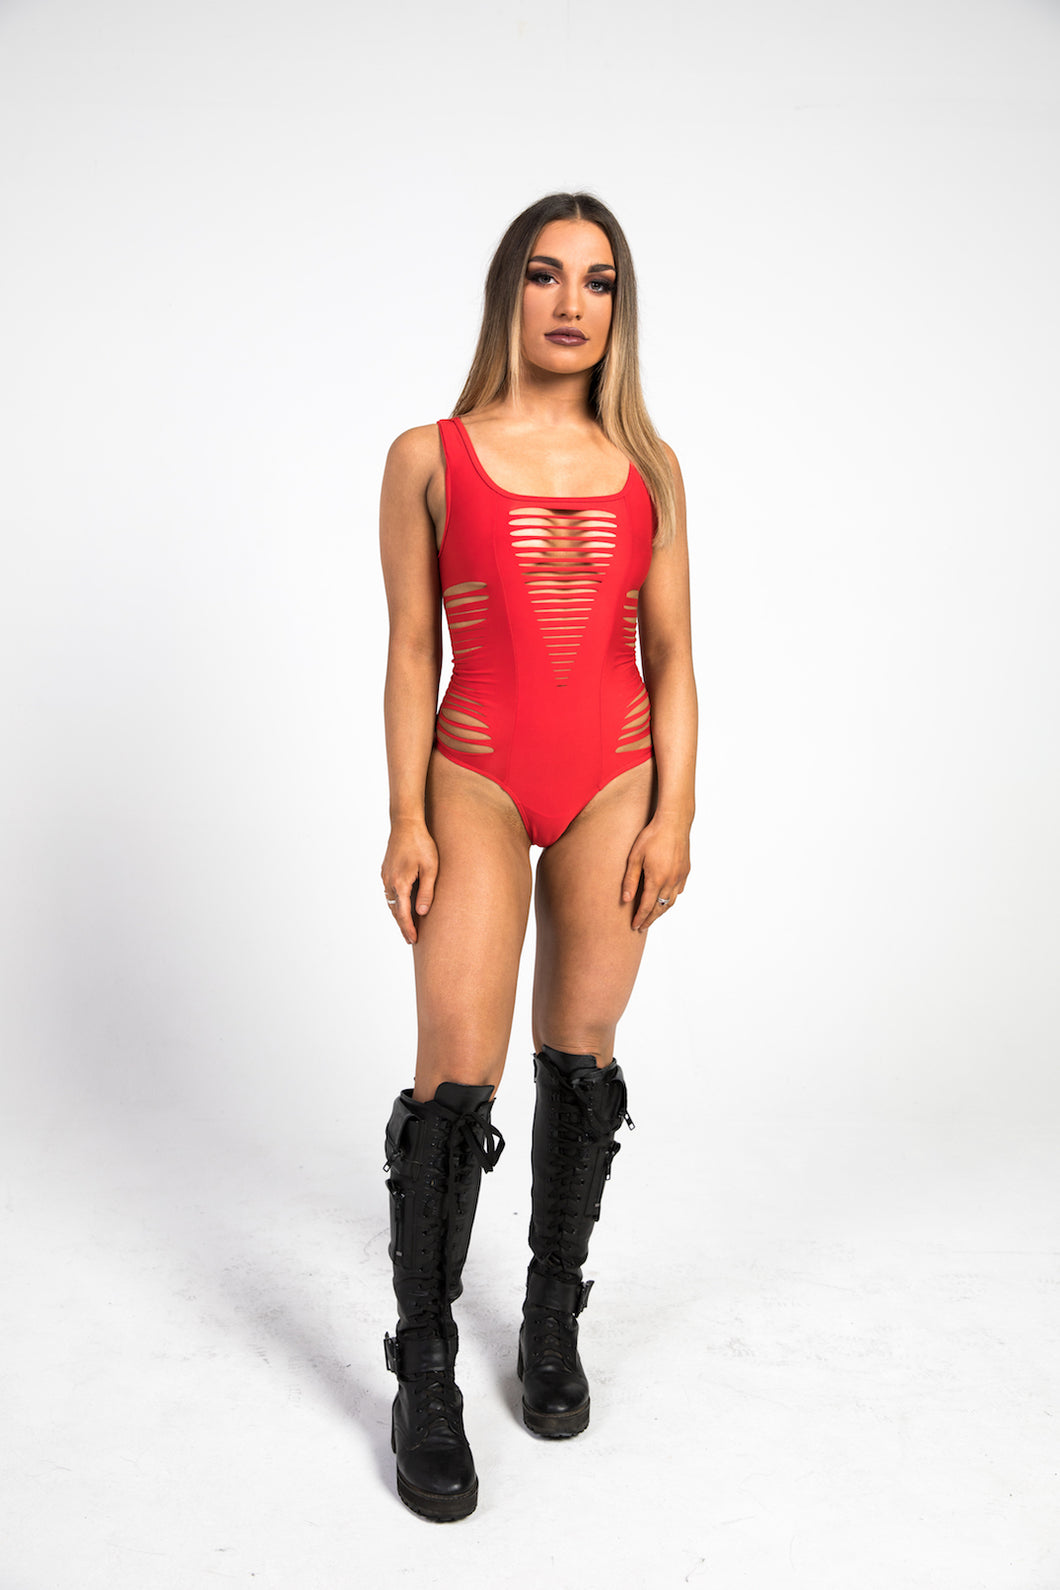 woman wearing red bodysuit